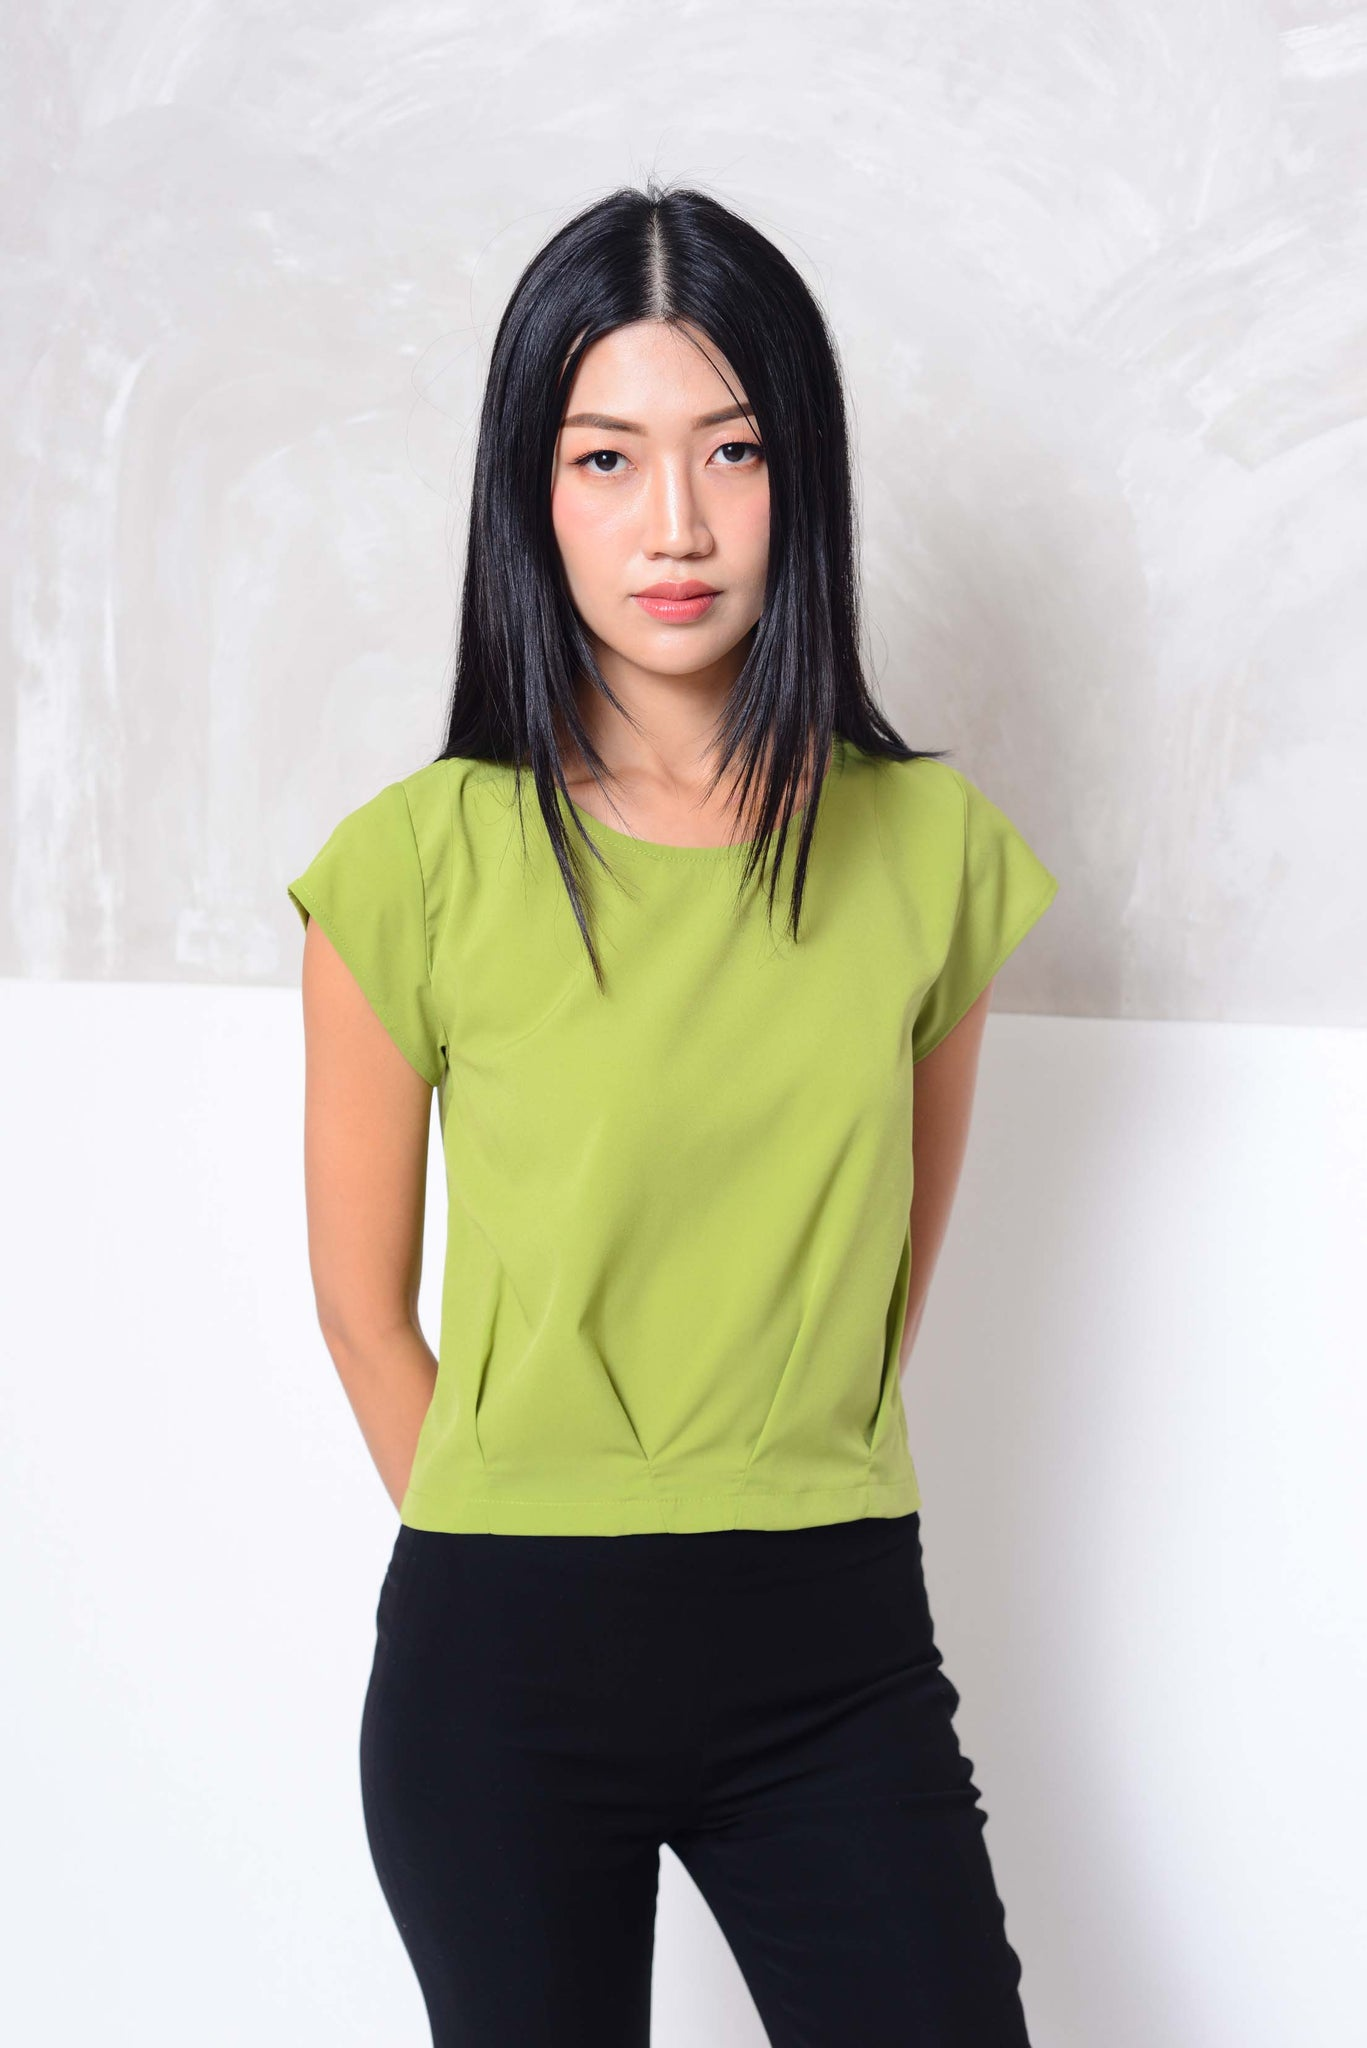 coming soon! Basics- Design pleats crop top in green